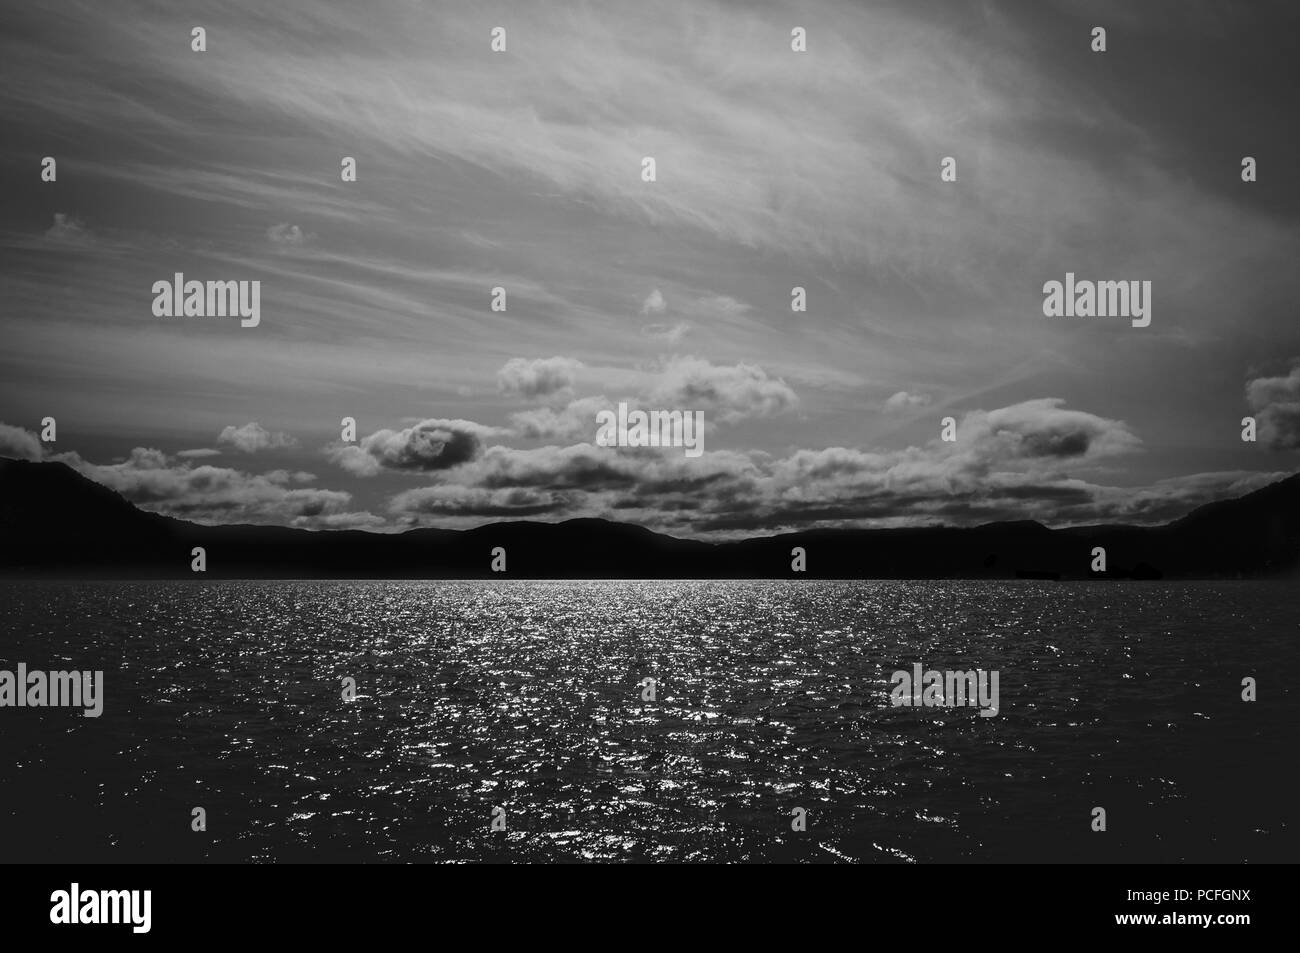 Dramatic seascape in black and white perfect decorative art photography for home or work